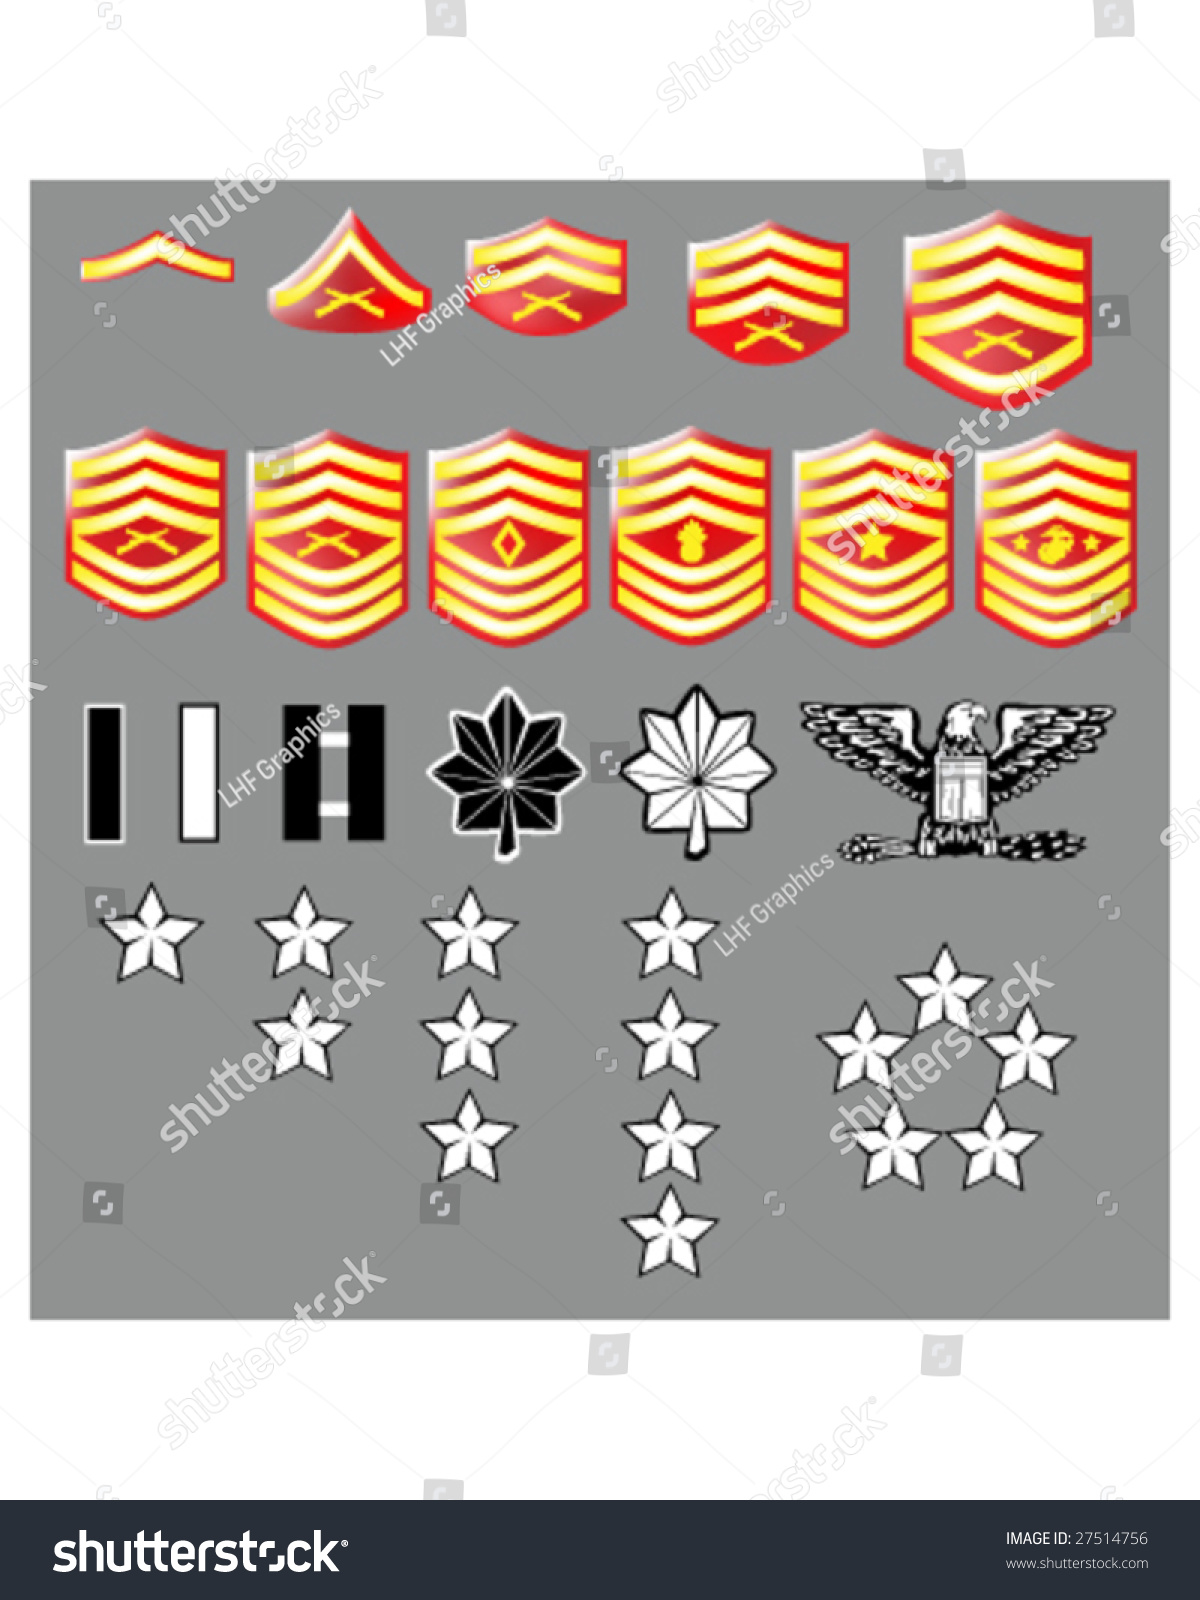 "marine corps rank structure essay Hi folks, after my post on the dutch army's 1940 platoon structure, i've  both  hold the rank of marinier (literally ""marine"", but in terms of rank."